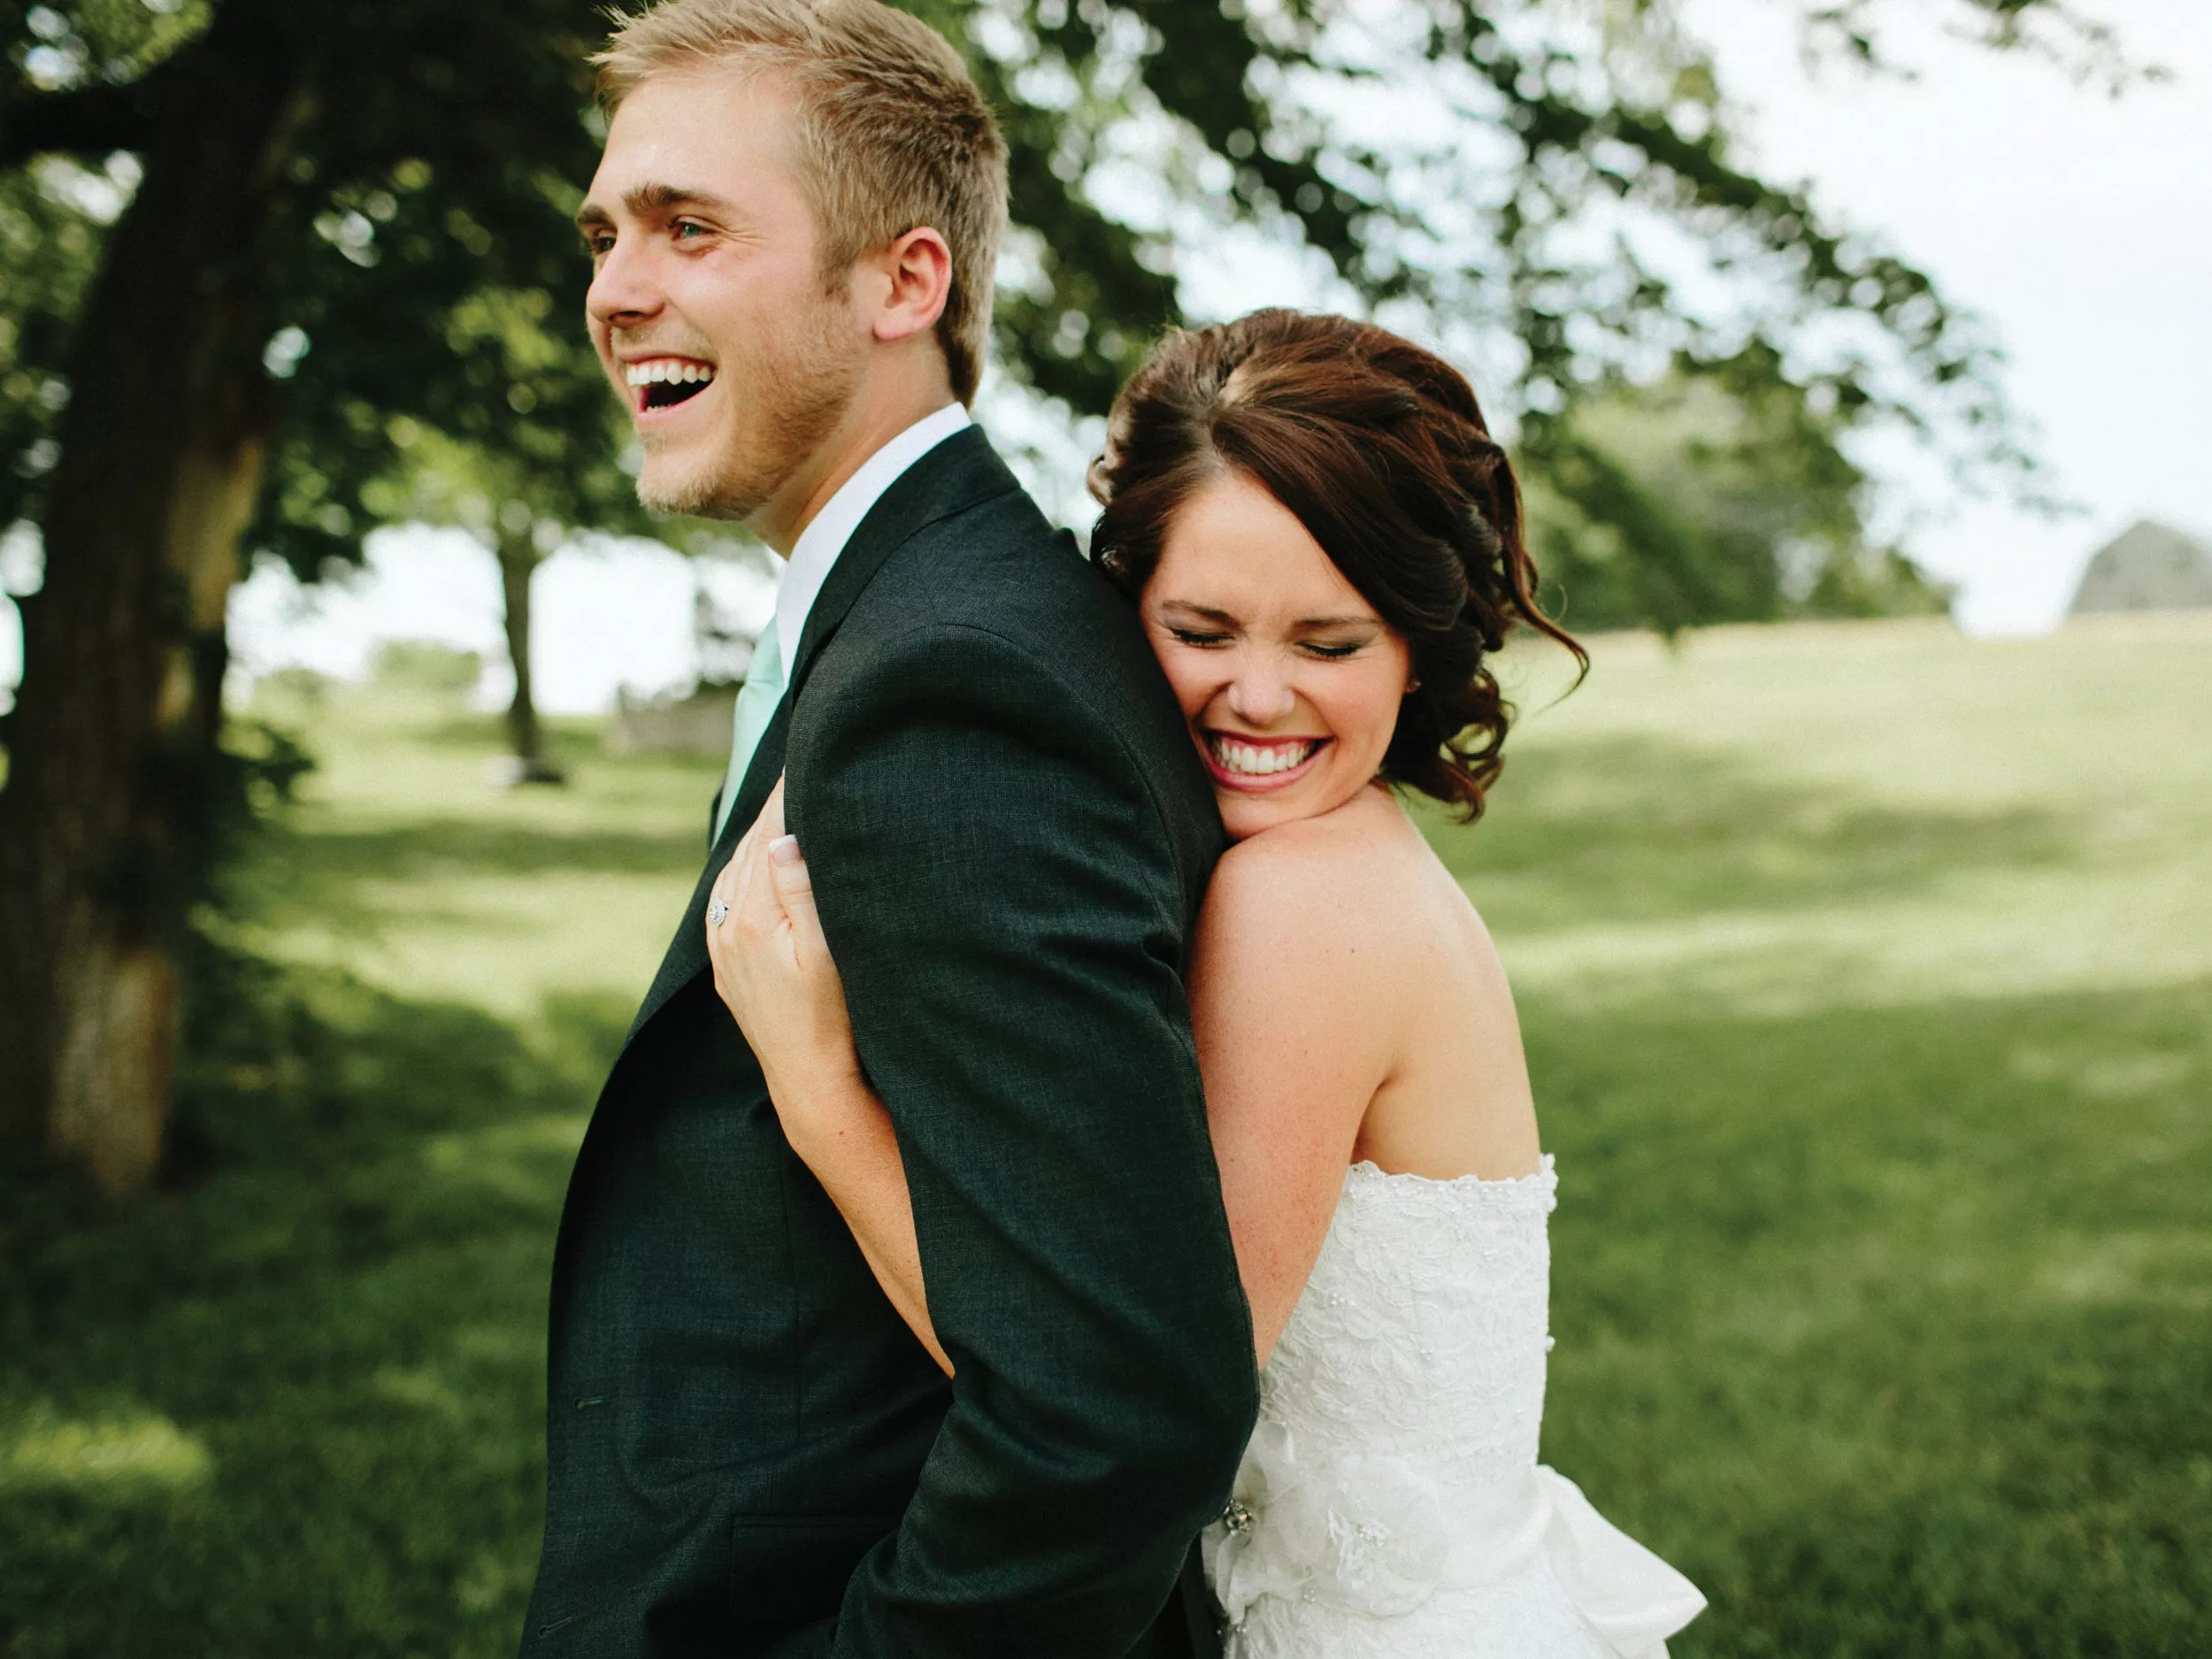 Top 20 Wedding Photography Mistakes